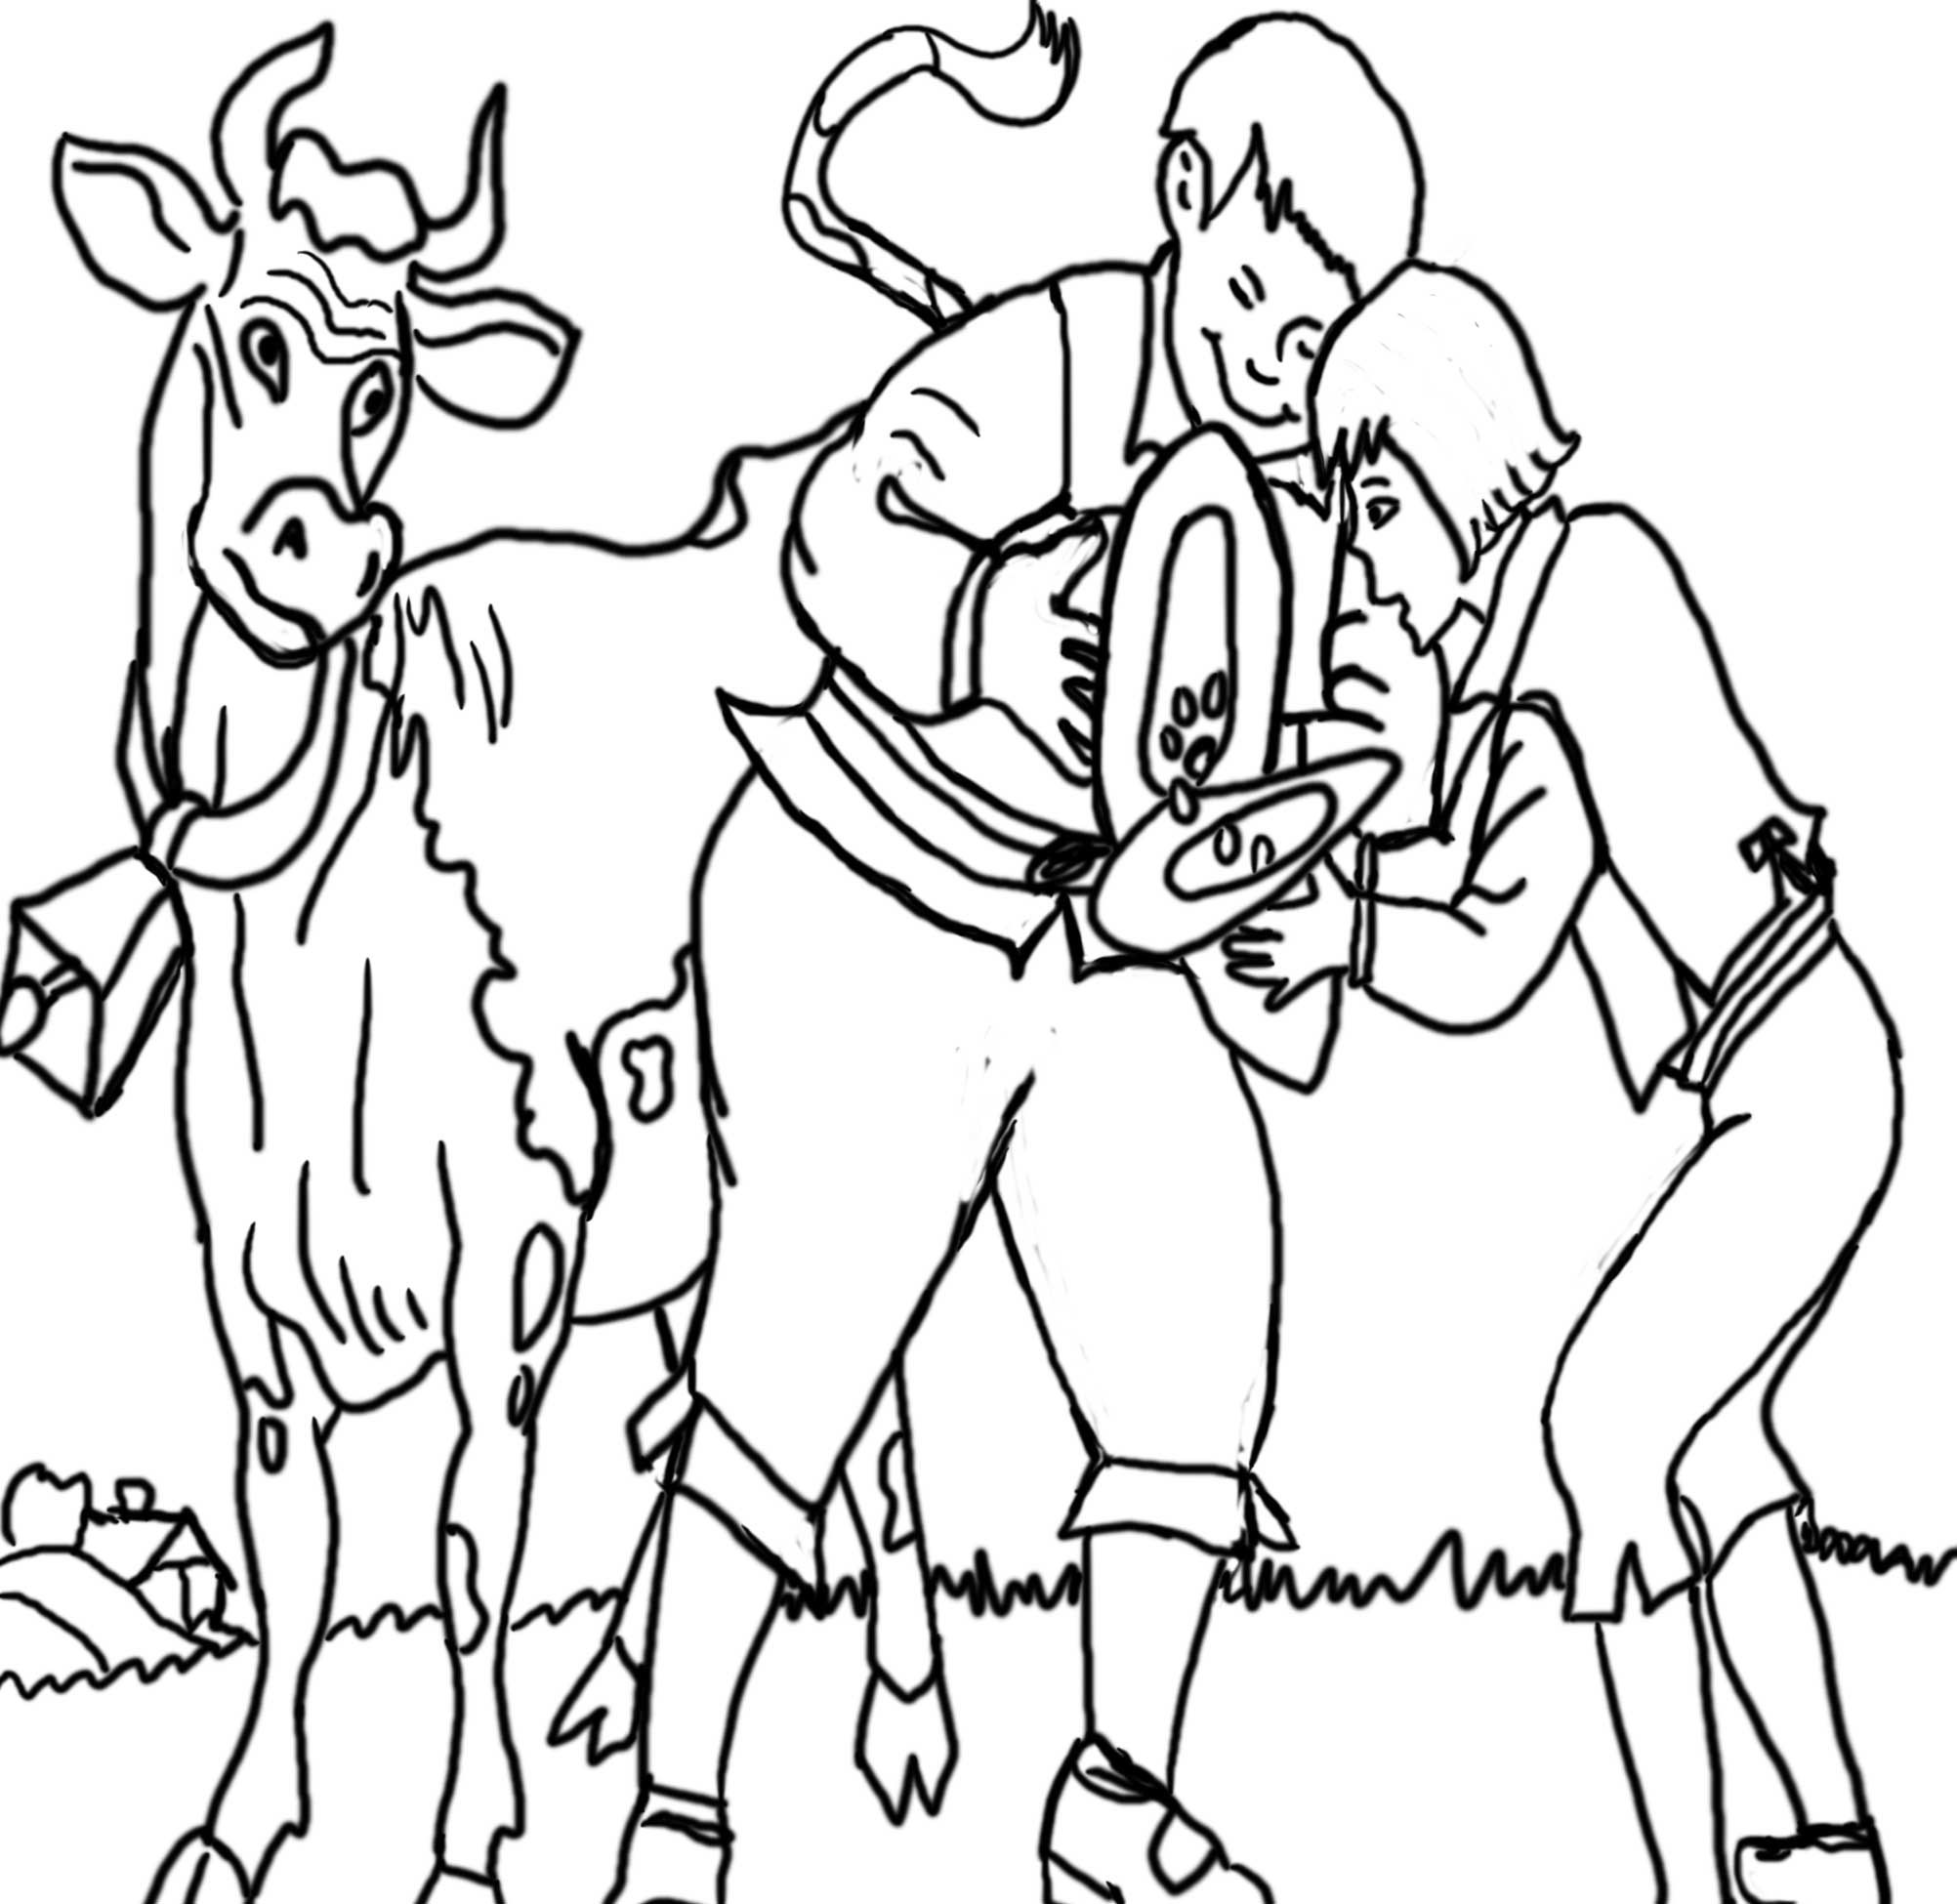 Jack And The Beanstalk Coloring Pages | COLORING PAGES FOR FREE ...